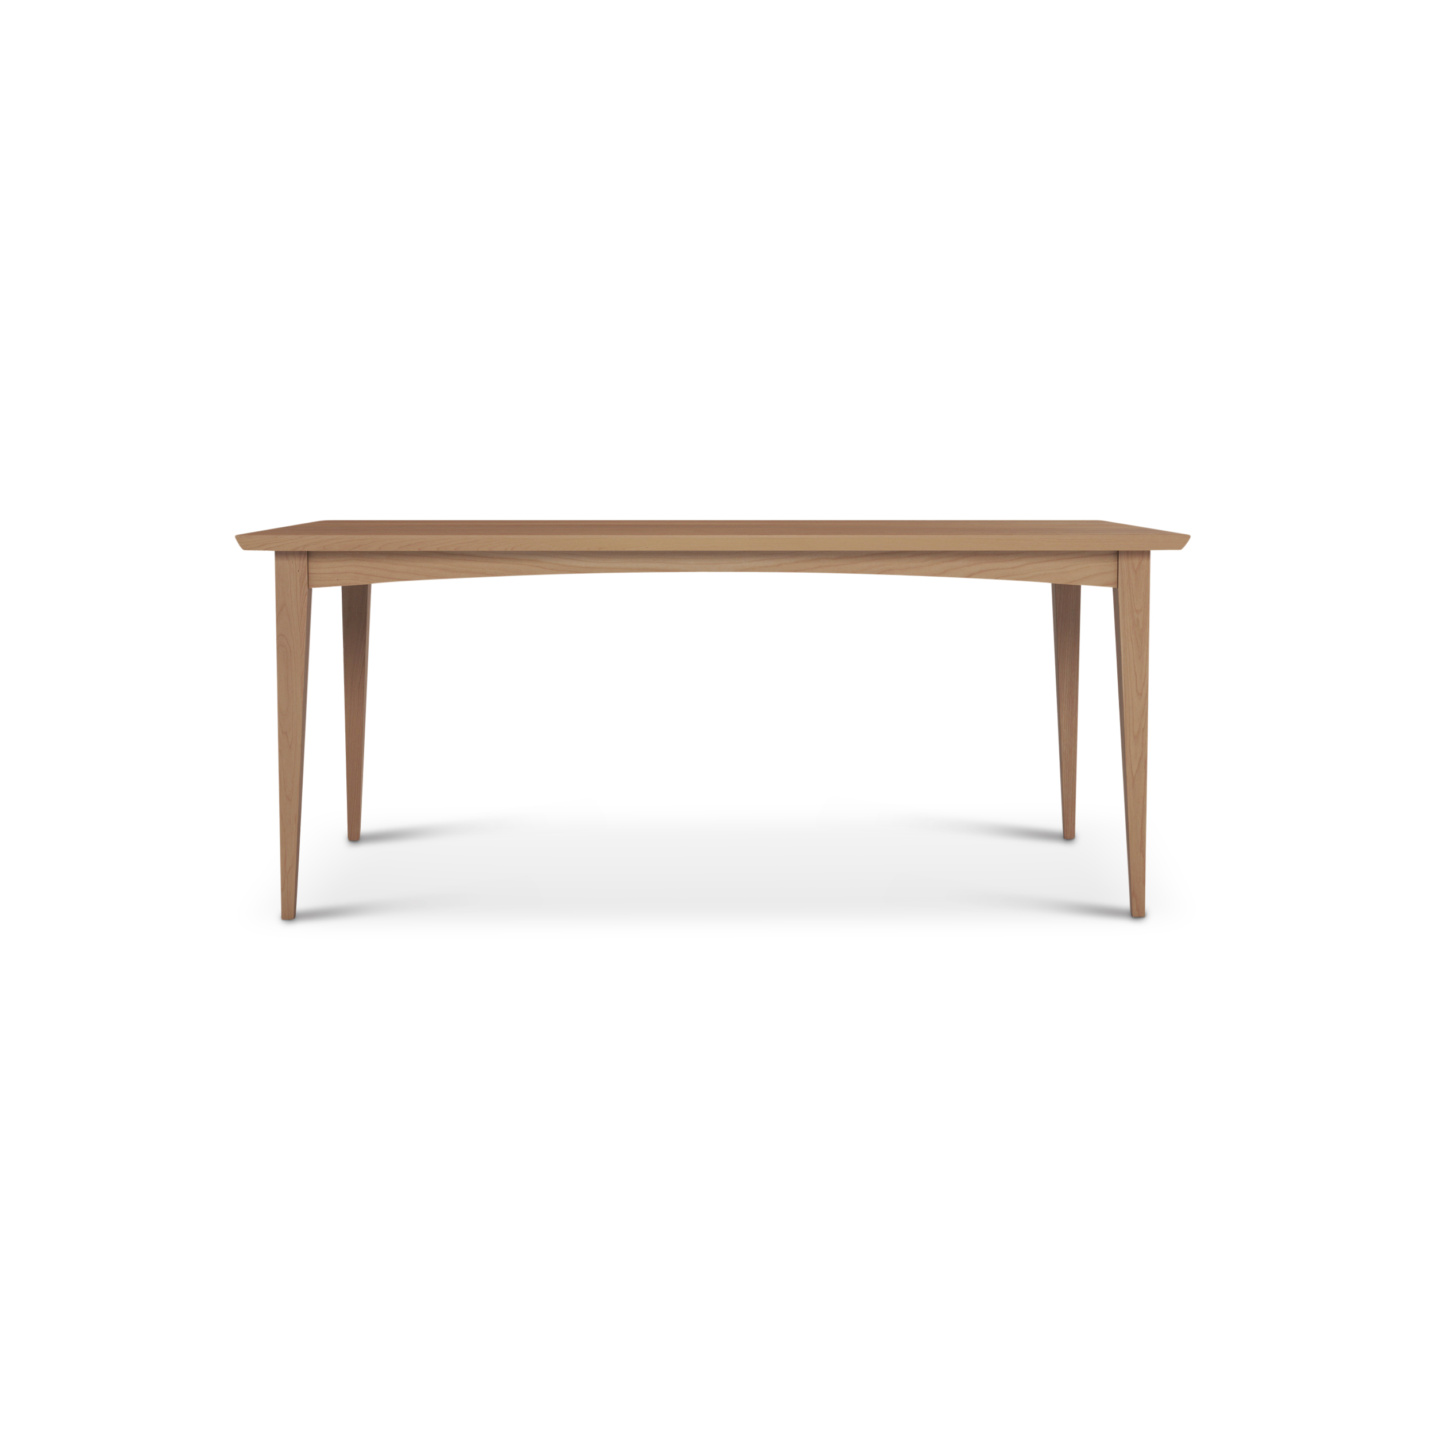 6 foot cherry wood table with tapered solid wood legs